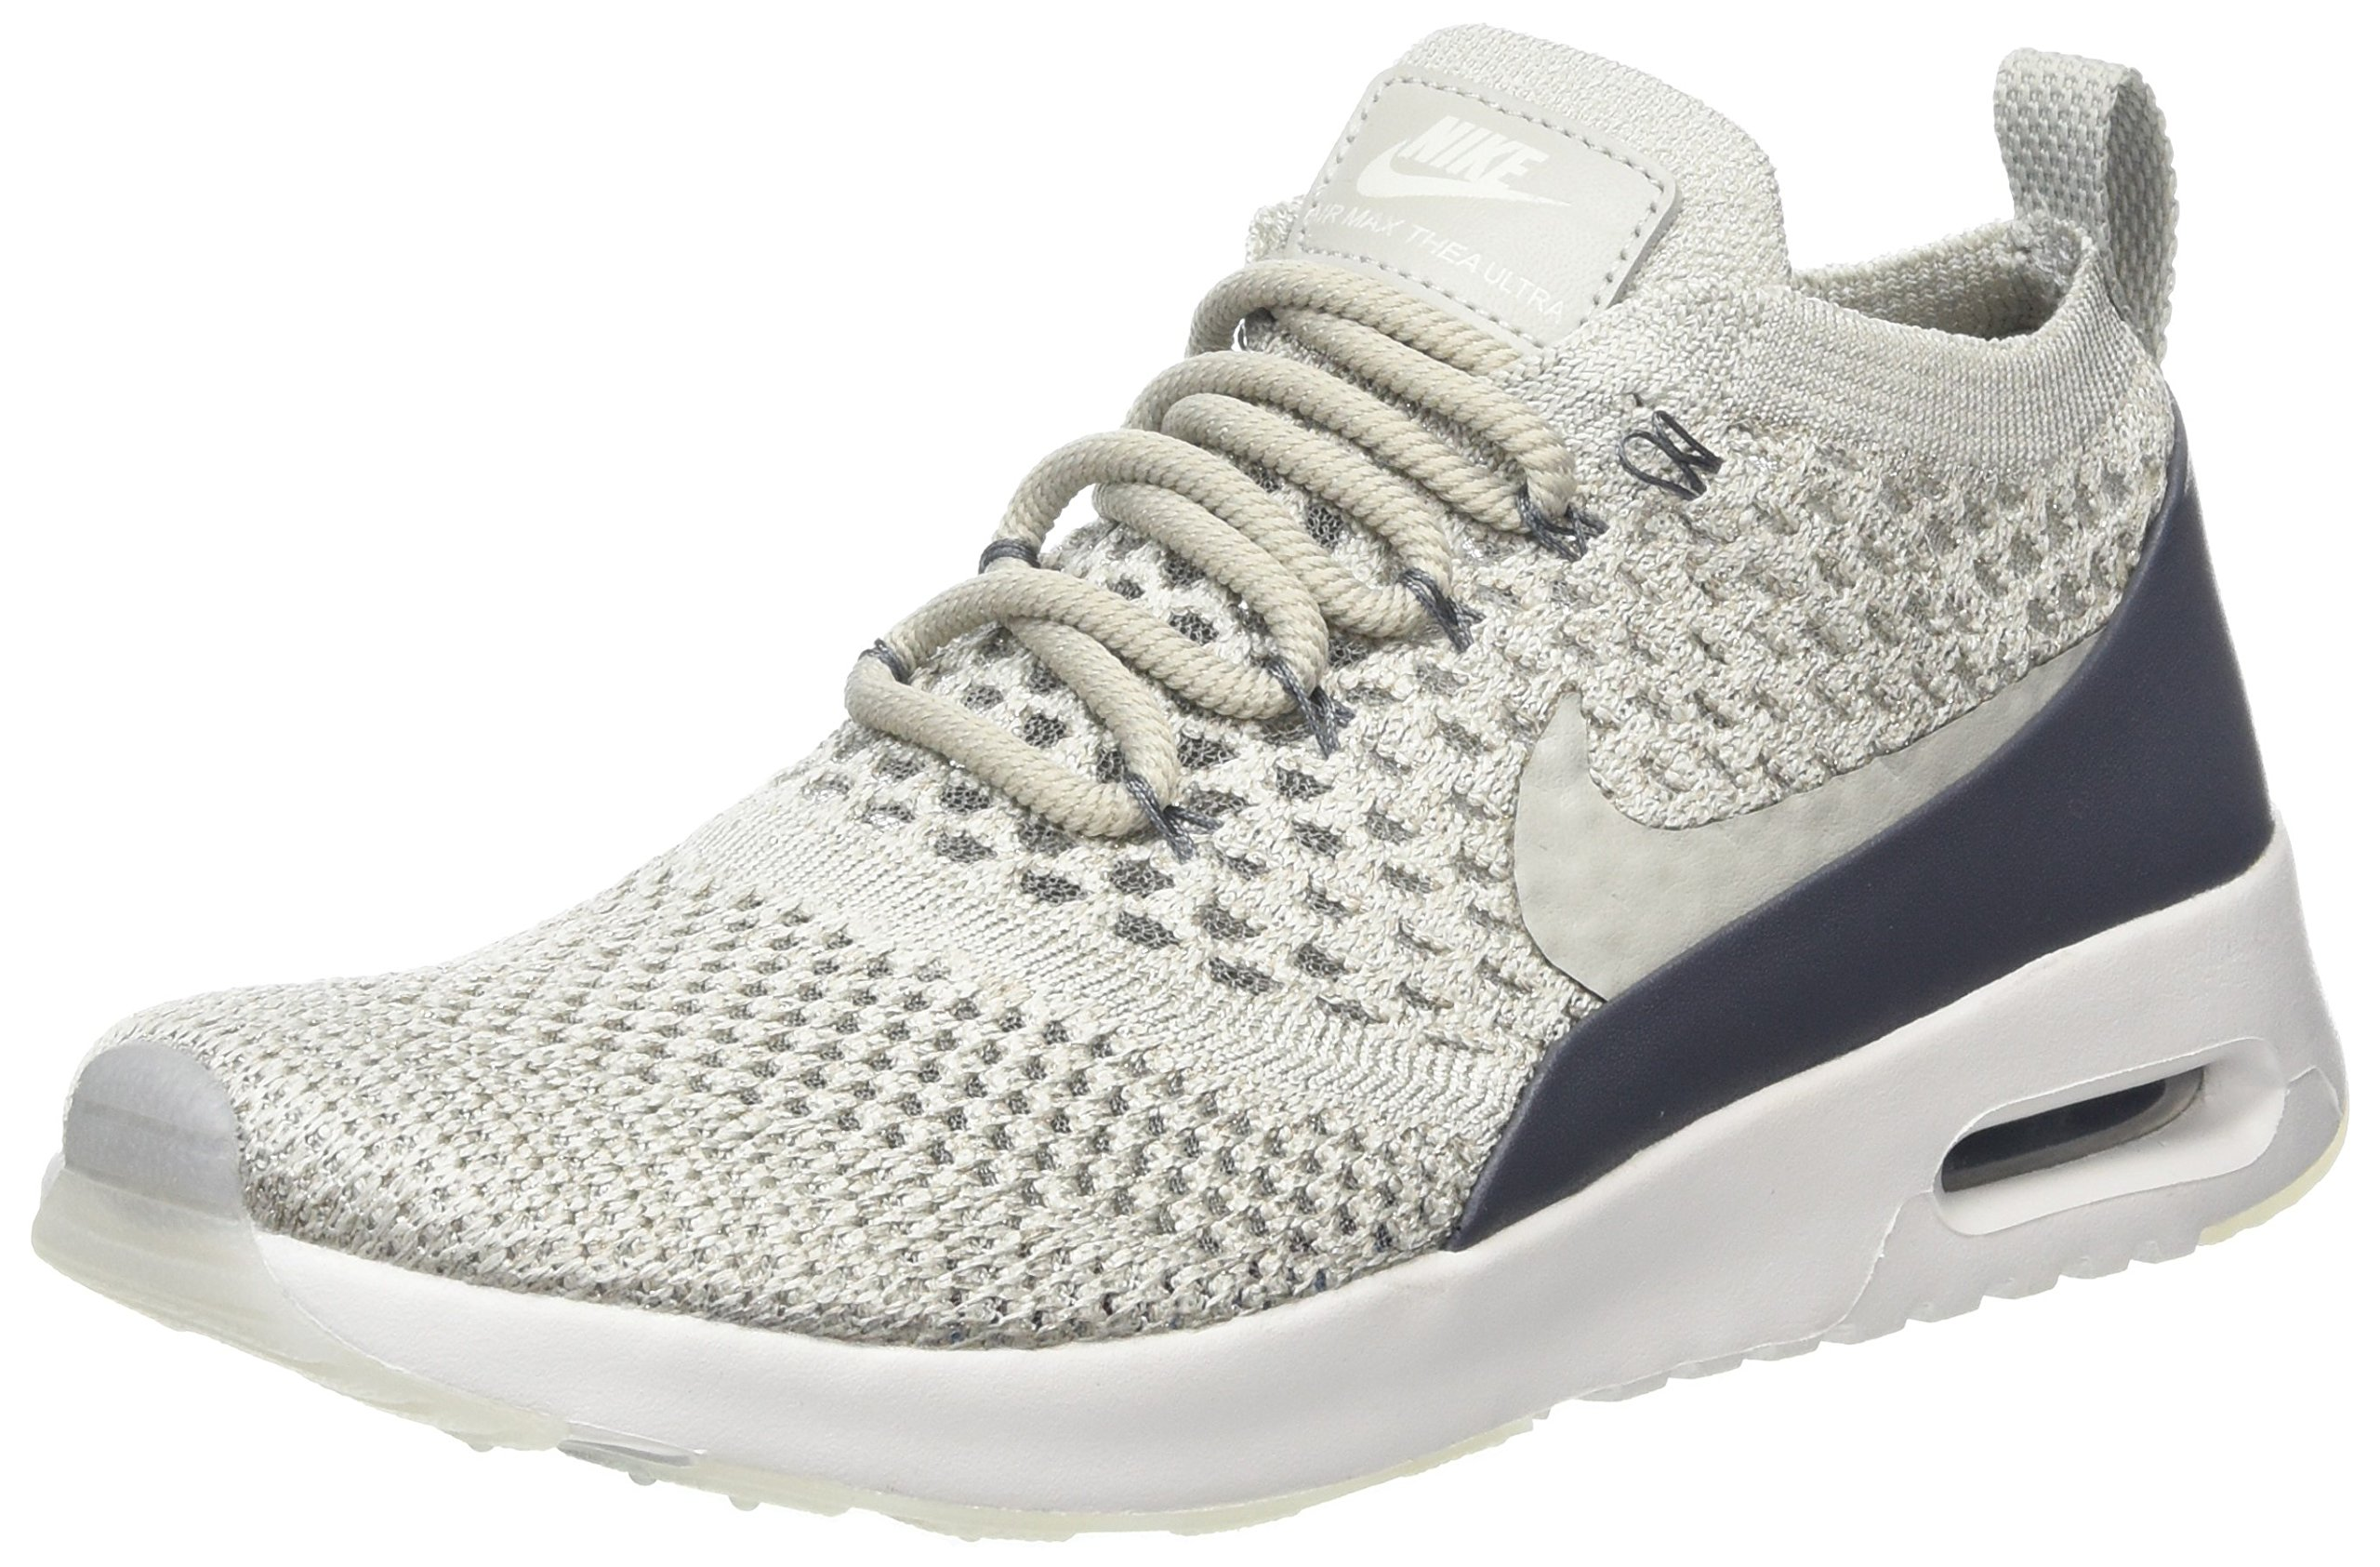 super popular dae27 7bb88 Galleon - Nike Women s Air Max Thea Ultra Flyknit Trainers, Gery Pale Dark  Grey, 8.5 M US